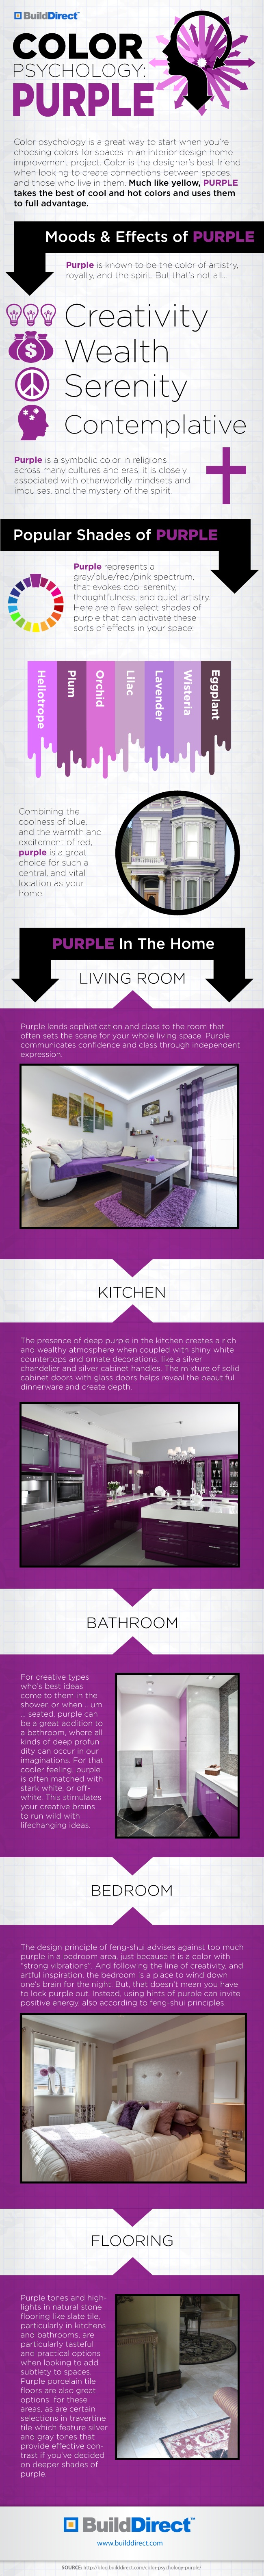 Emotional Interior Design Using Purple